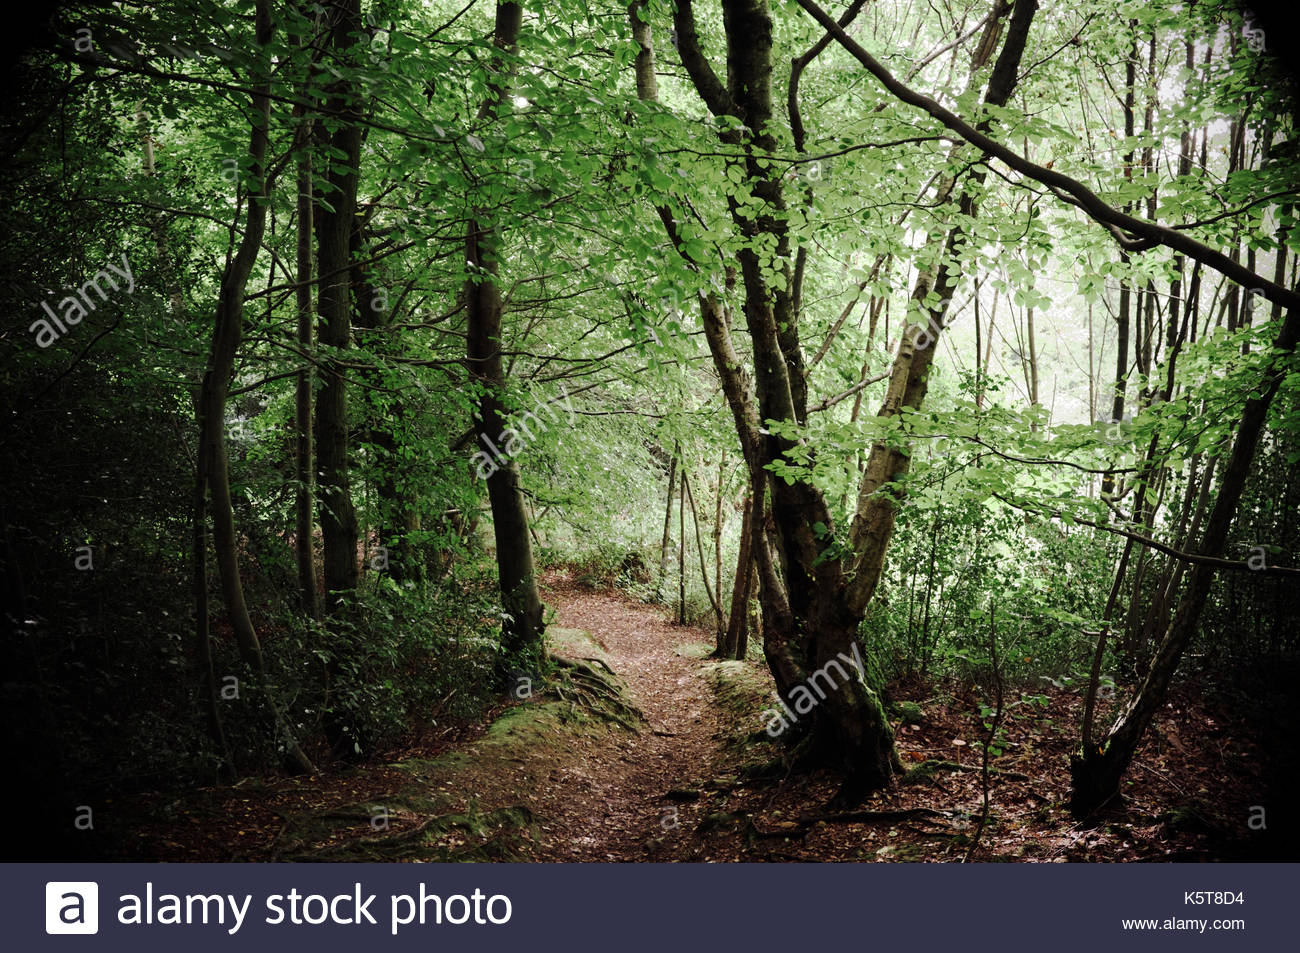 Wooded scene on Toys Hill in Kent, UK.Stock Photo